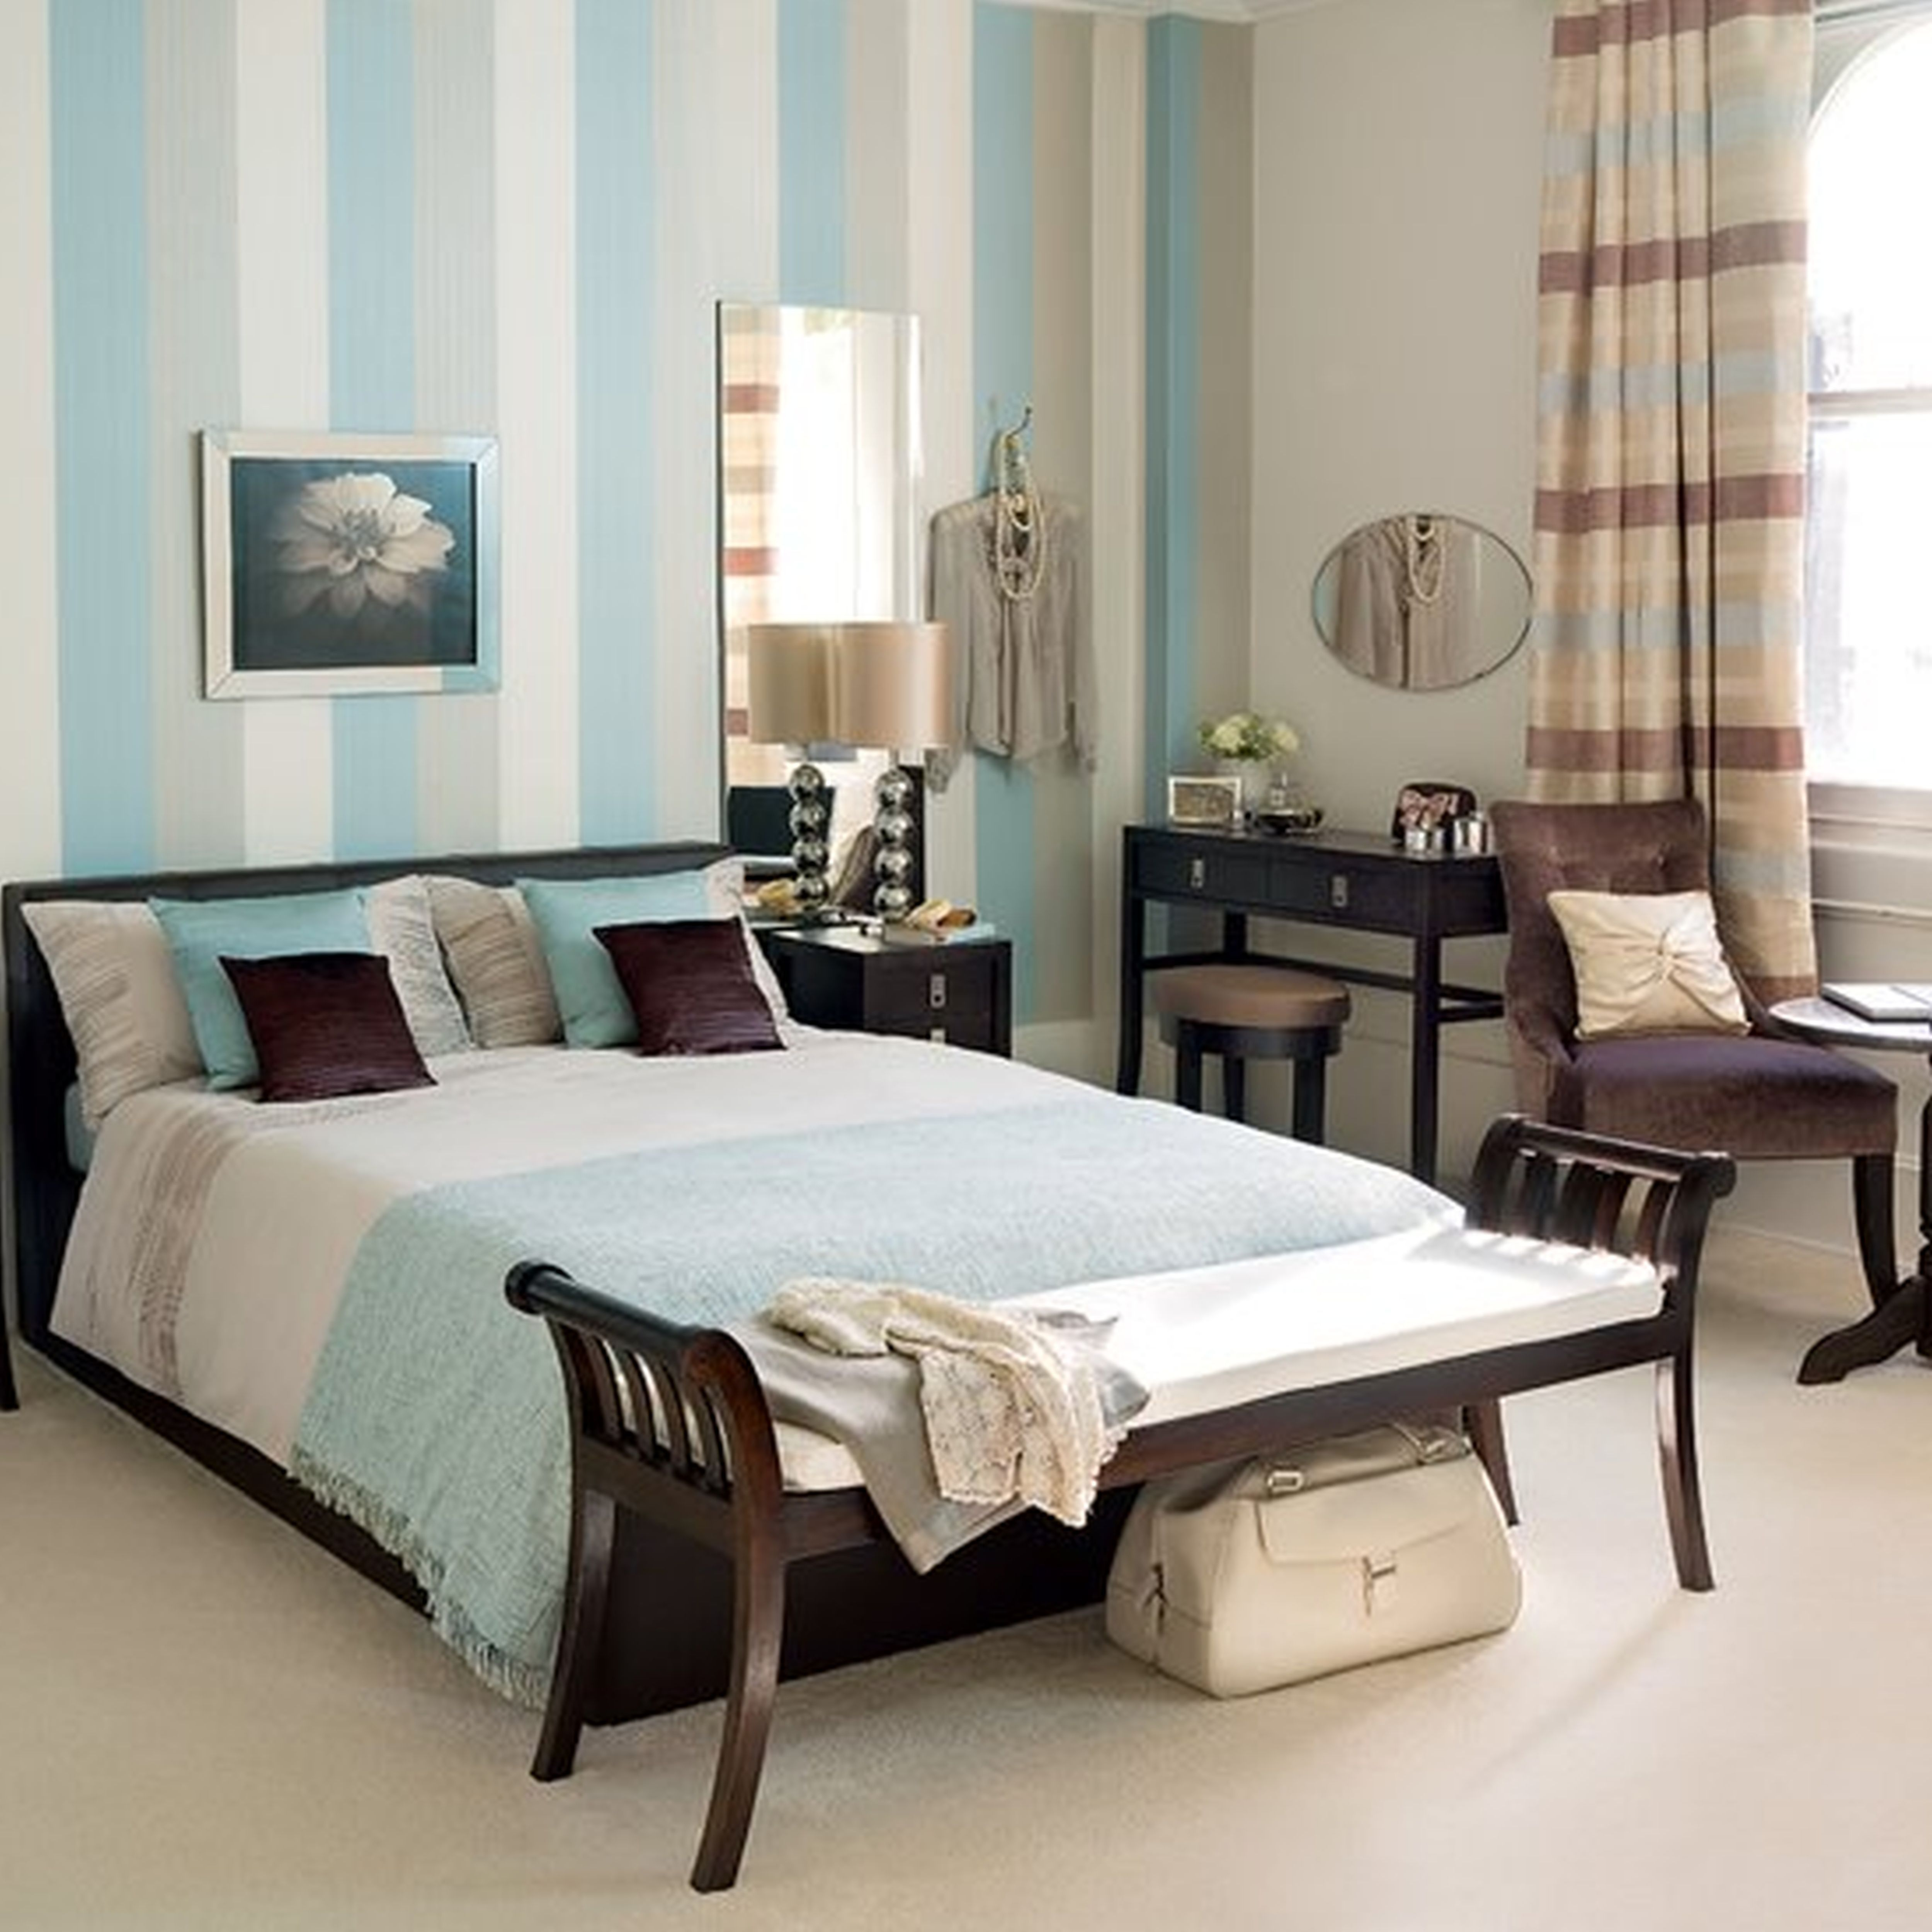 Interior Design Of Bedroom Images Wall Decor For Kids Bedroom Bedroom Ideas On A Budget Bedroom Colors For Males: Master Bedroom Painting Ideas